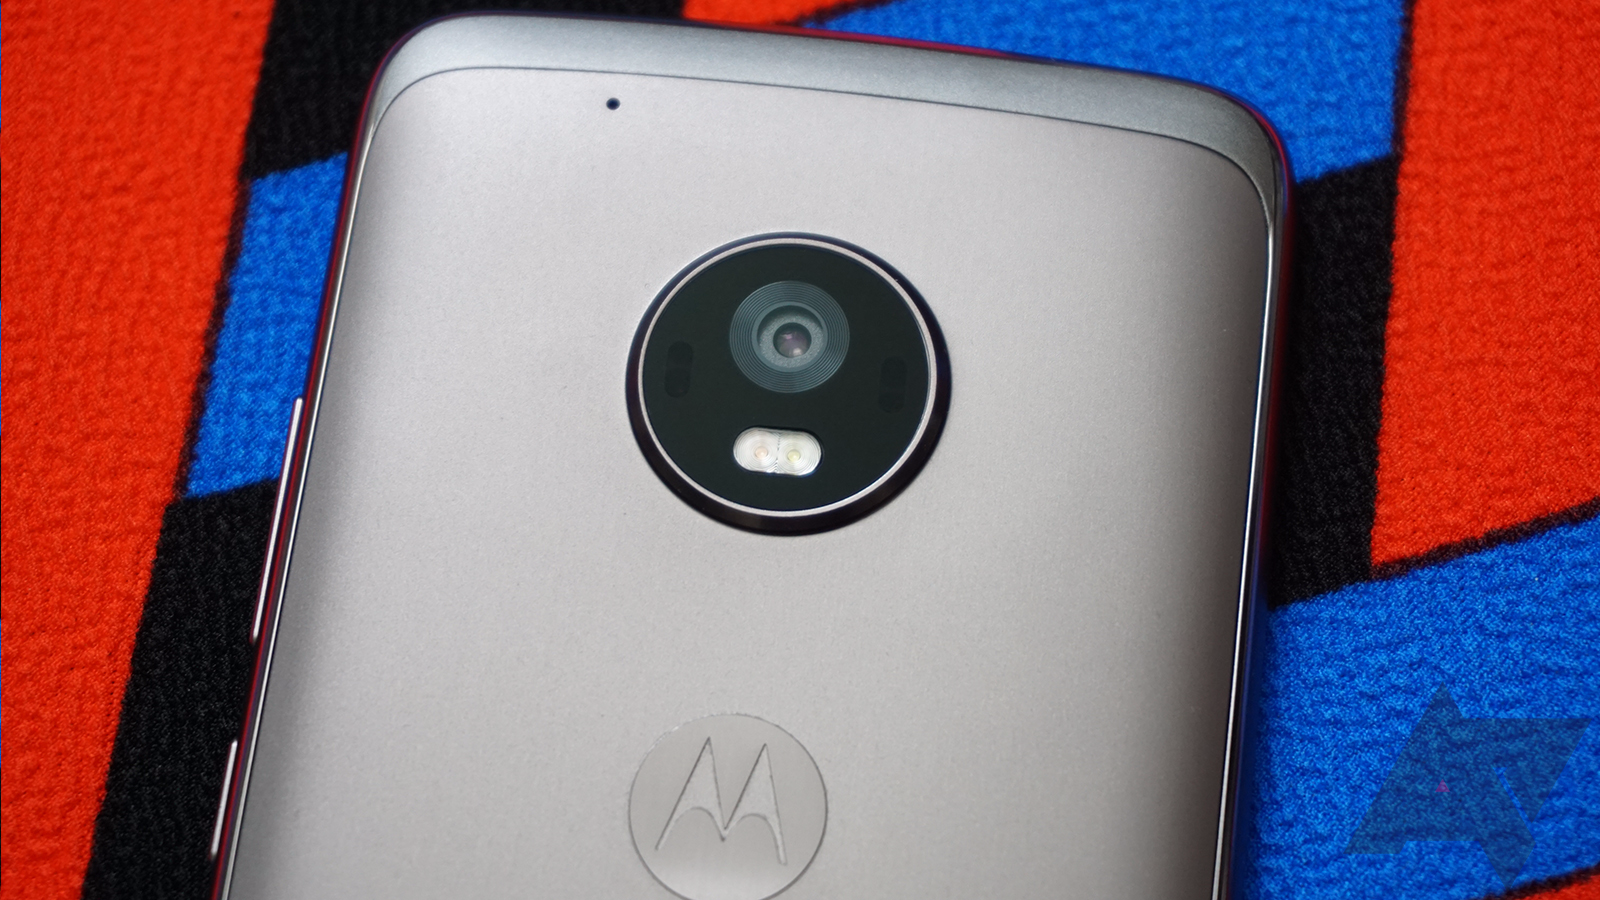 Leaked Images Reveal Moto X4 Could Have A Curved Screen